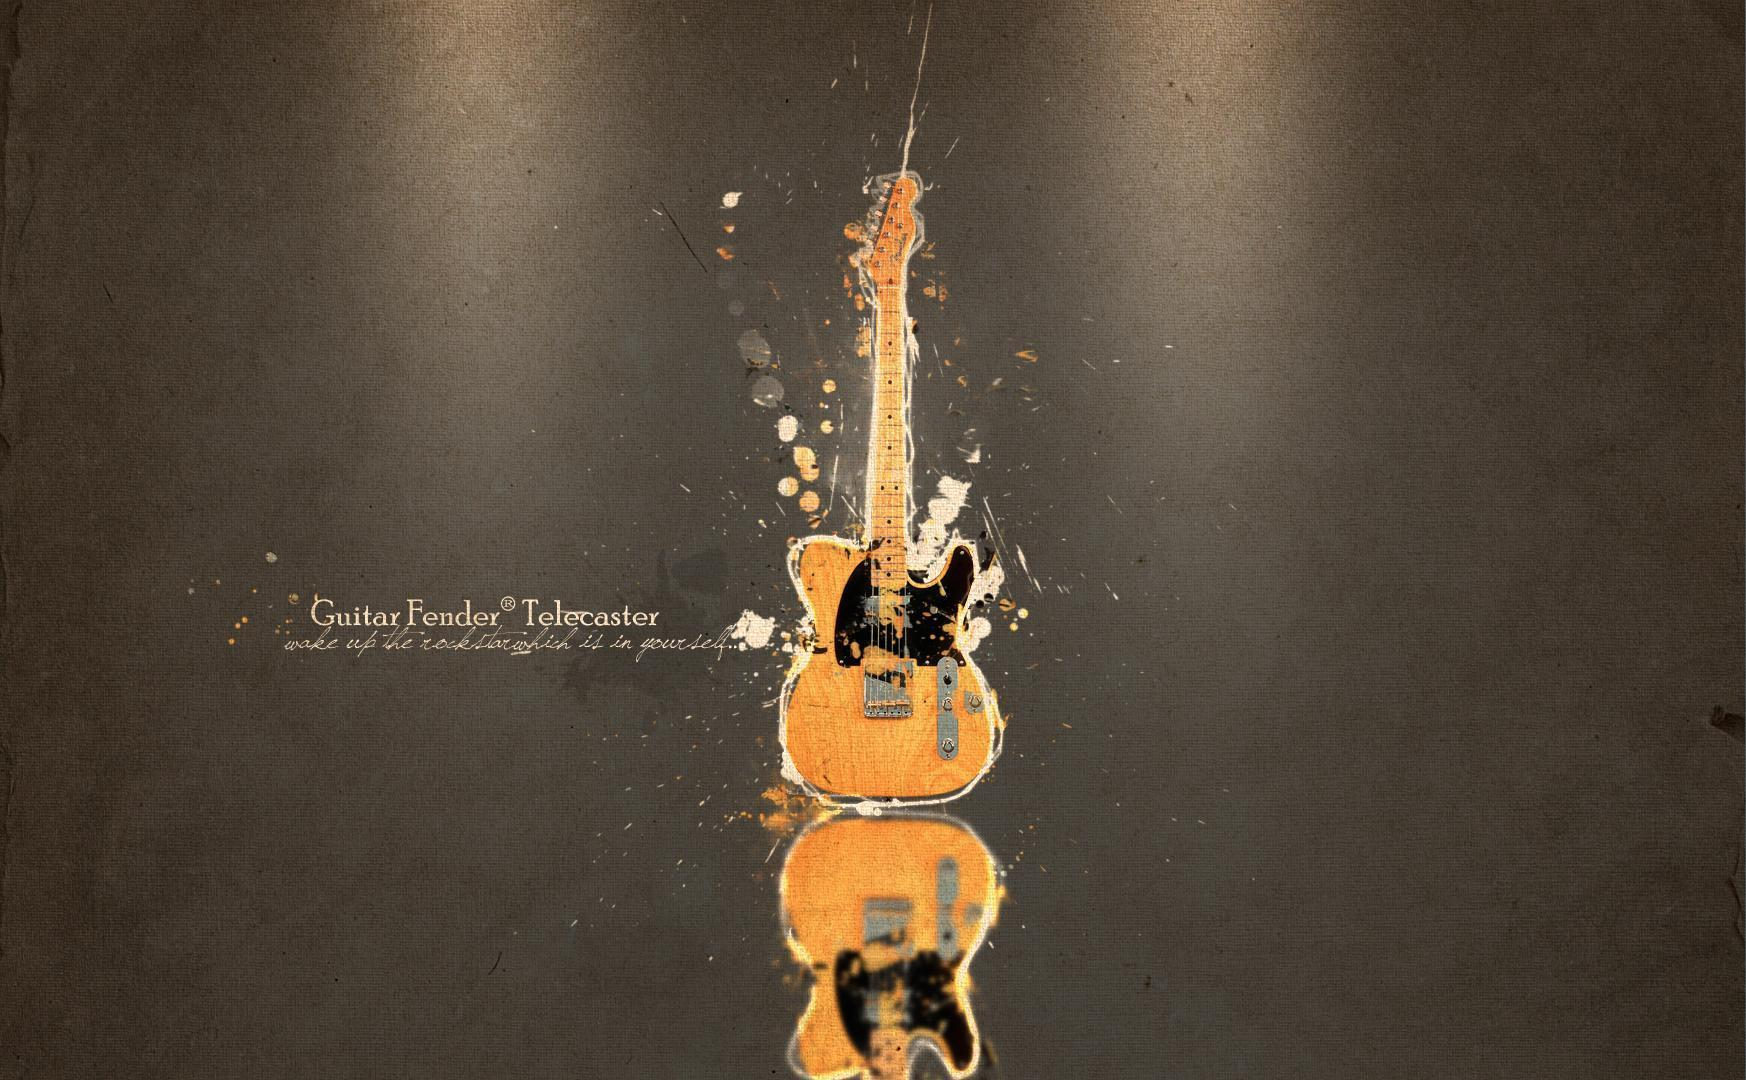 fender logo wallpaper - photo #31